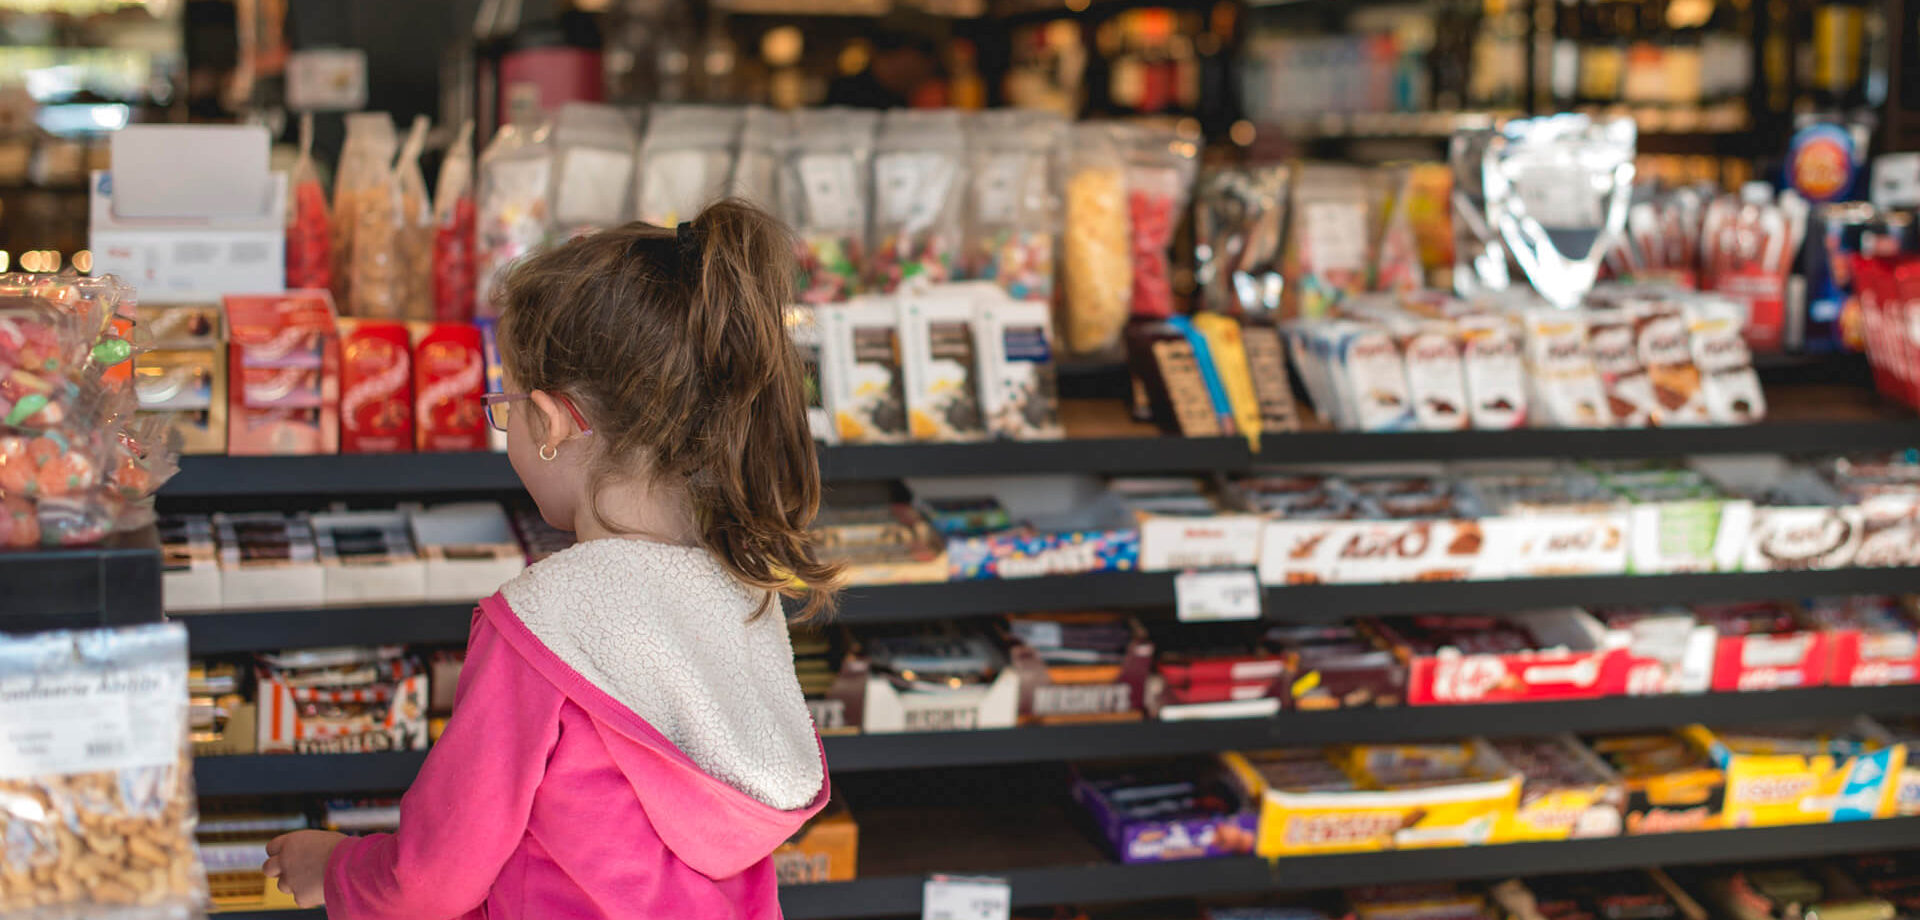 Little girl with pink sweather looking at a chocolate bar counter